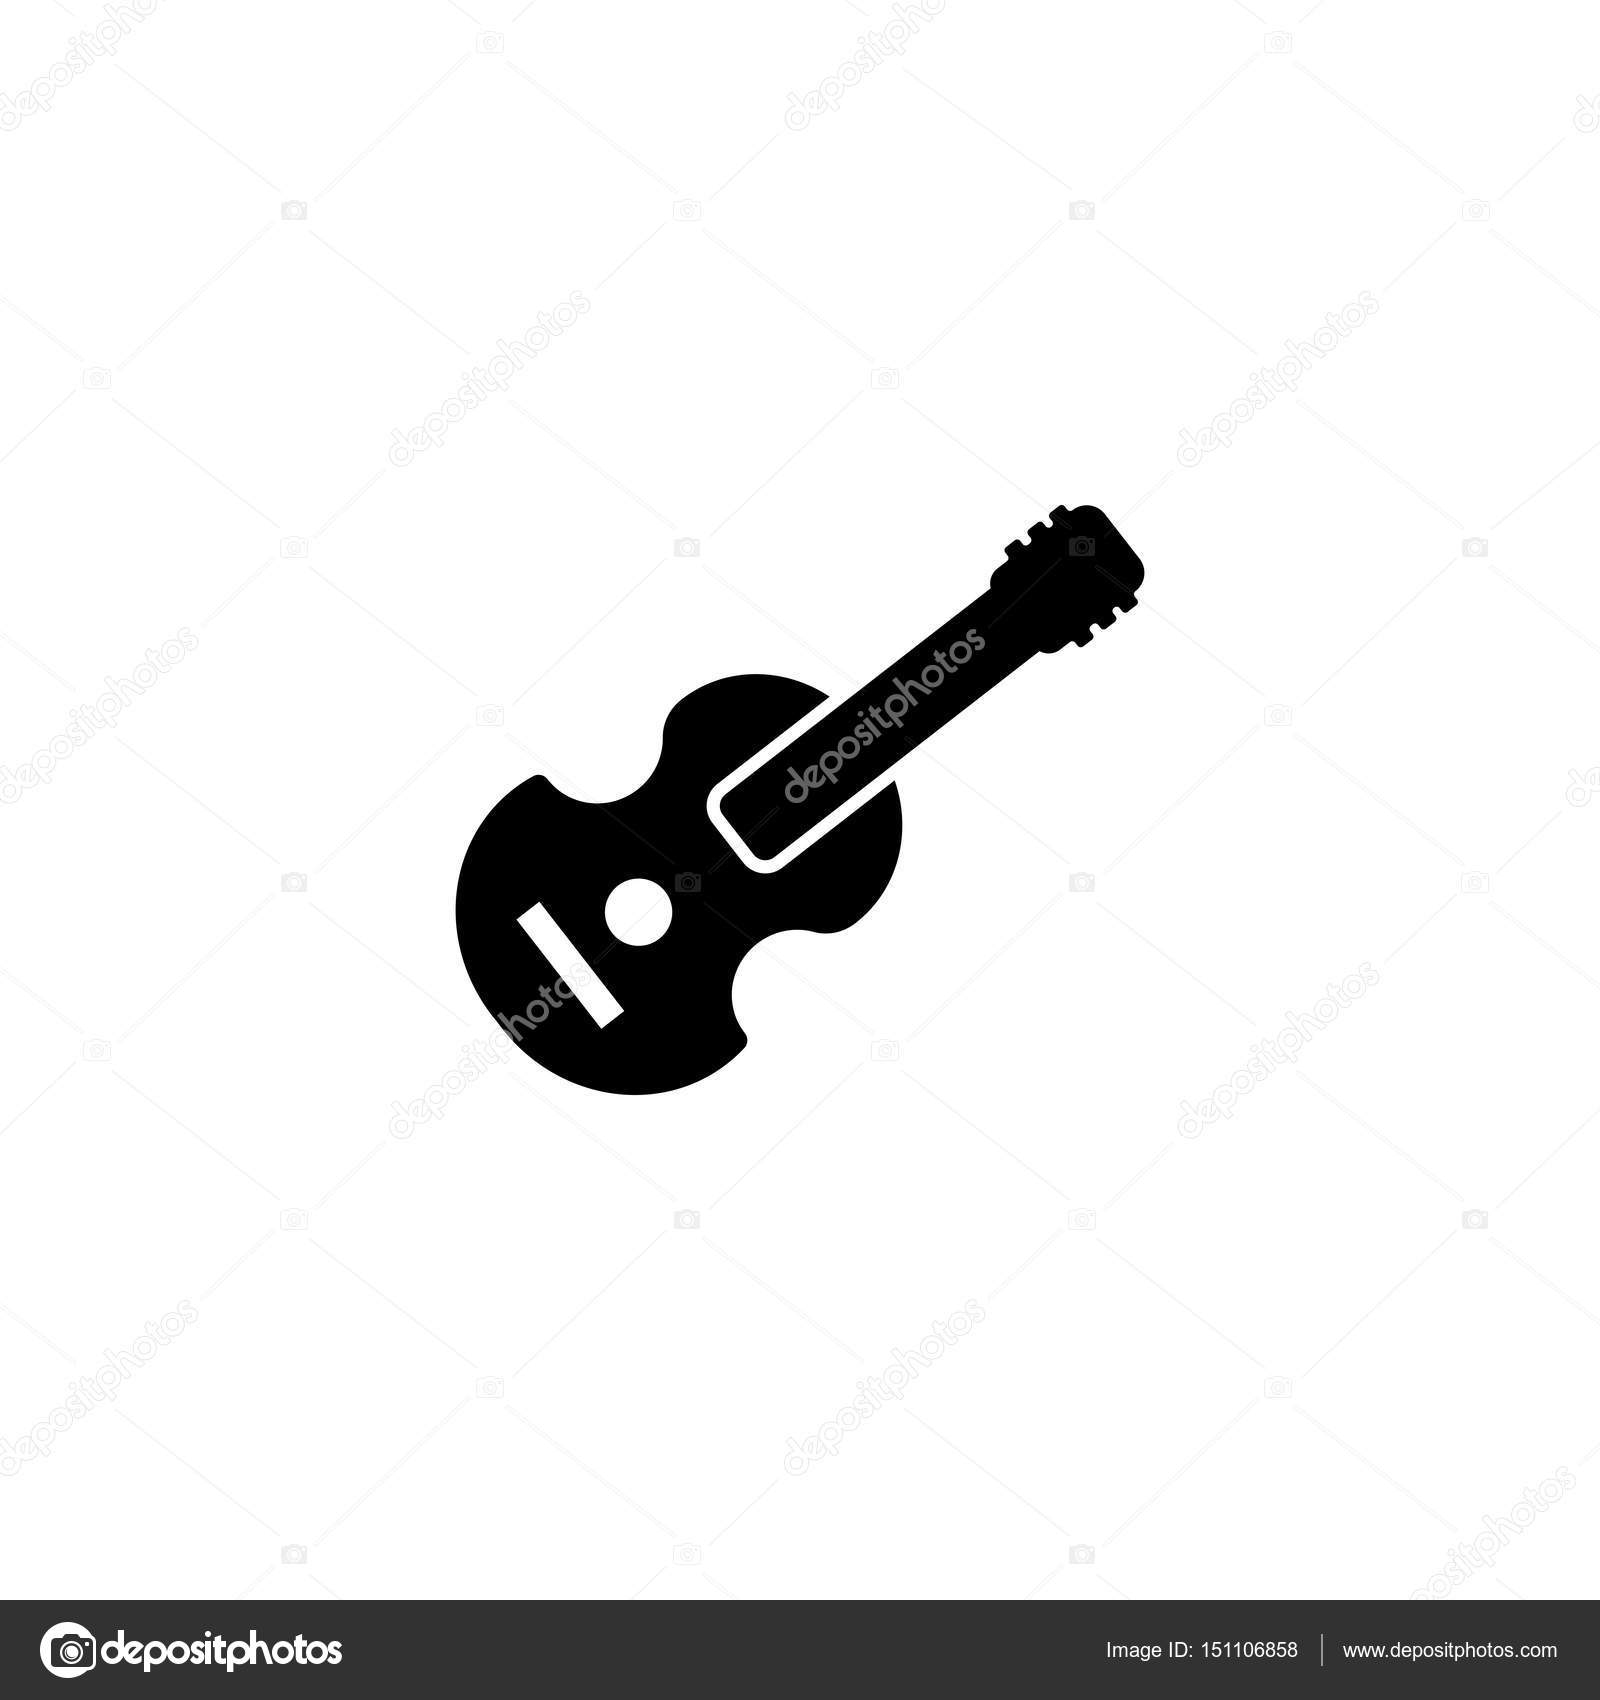 pictogram acoustic guitar icon black icon on white background rh depositphotos com acoustic guitar vector free download acoustic guitar vector free download